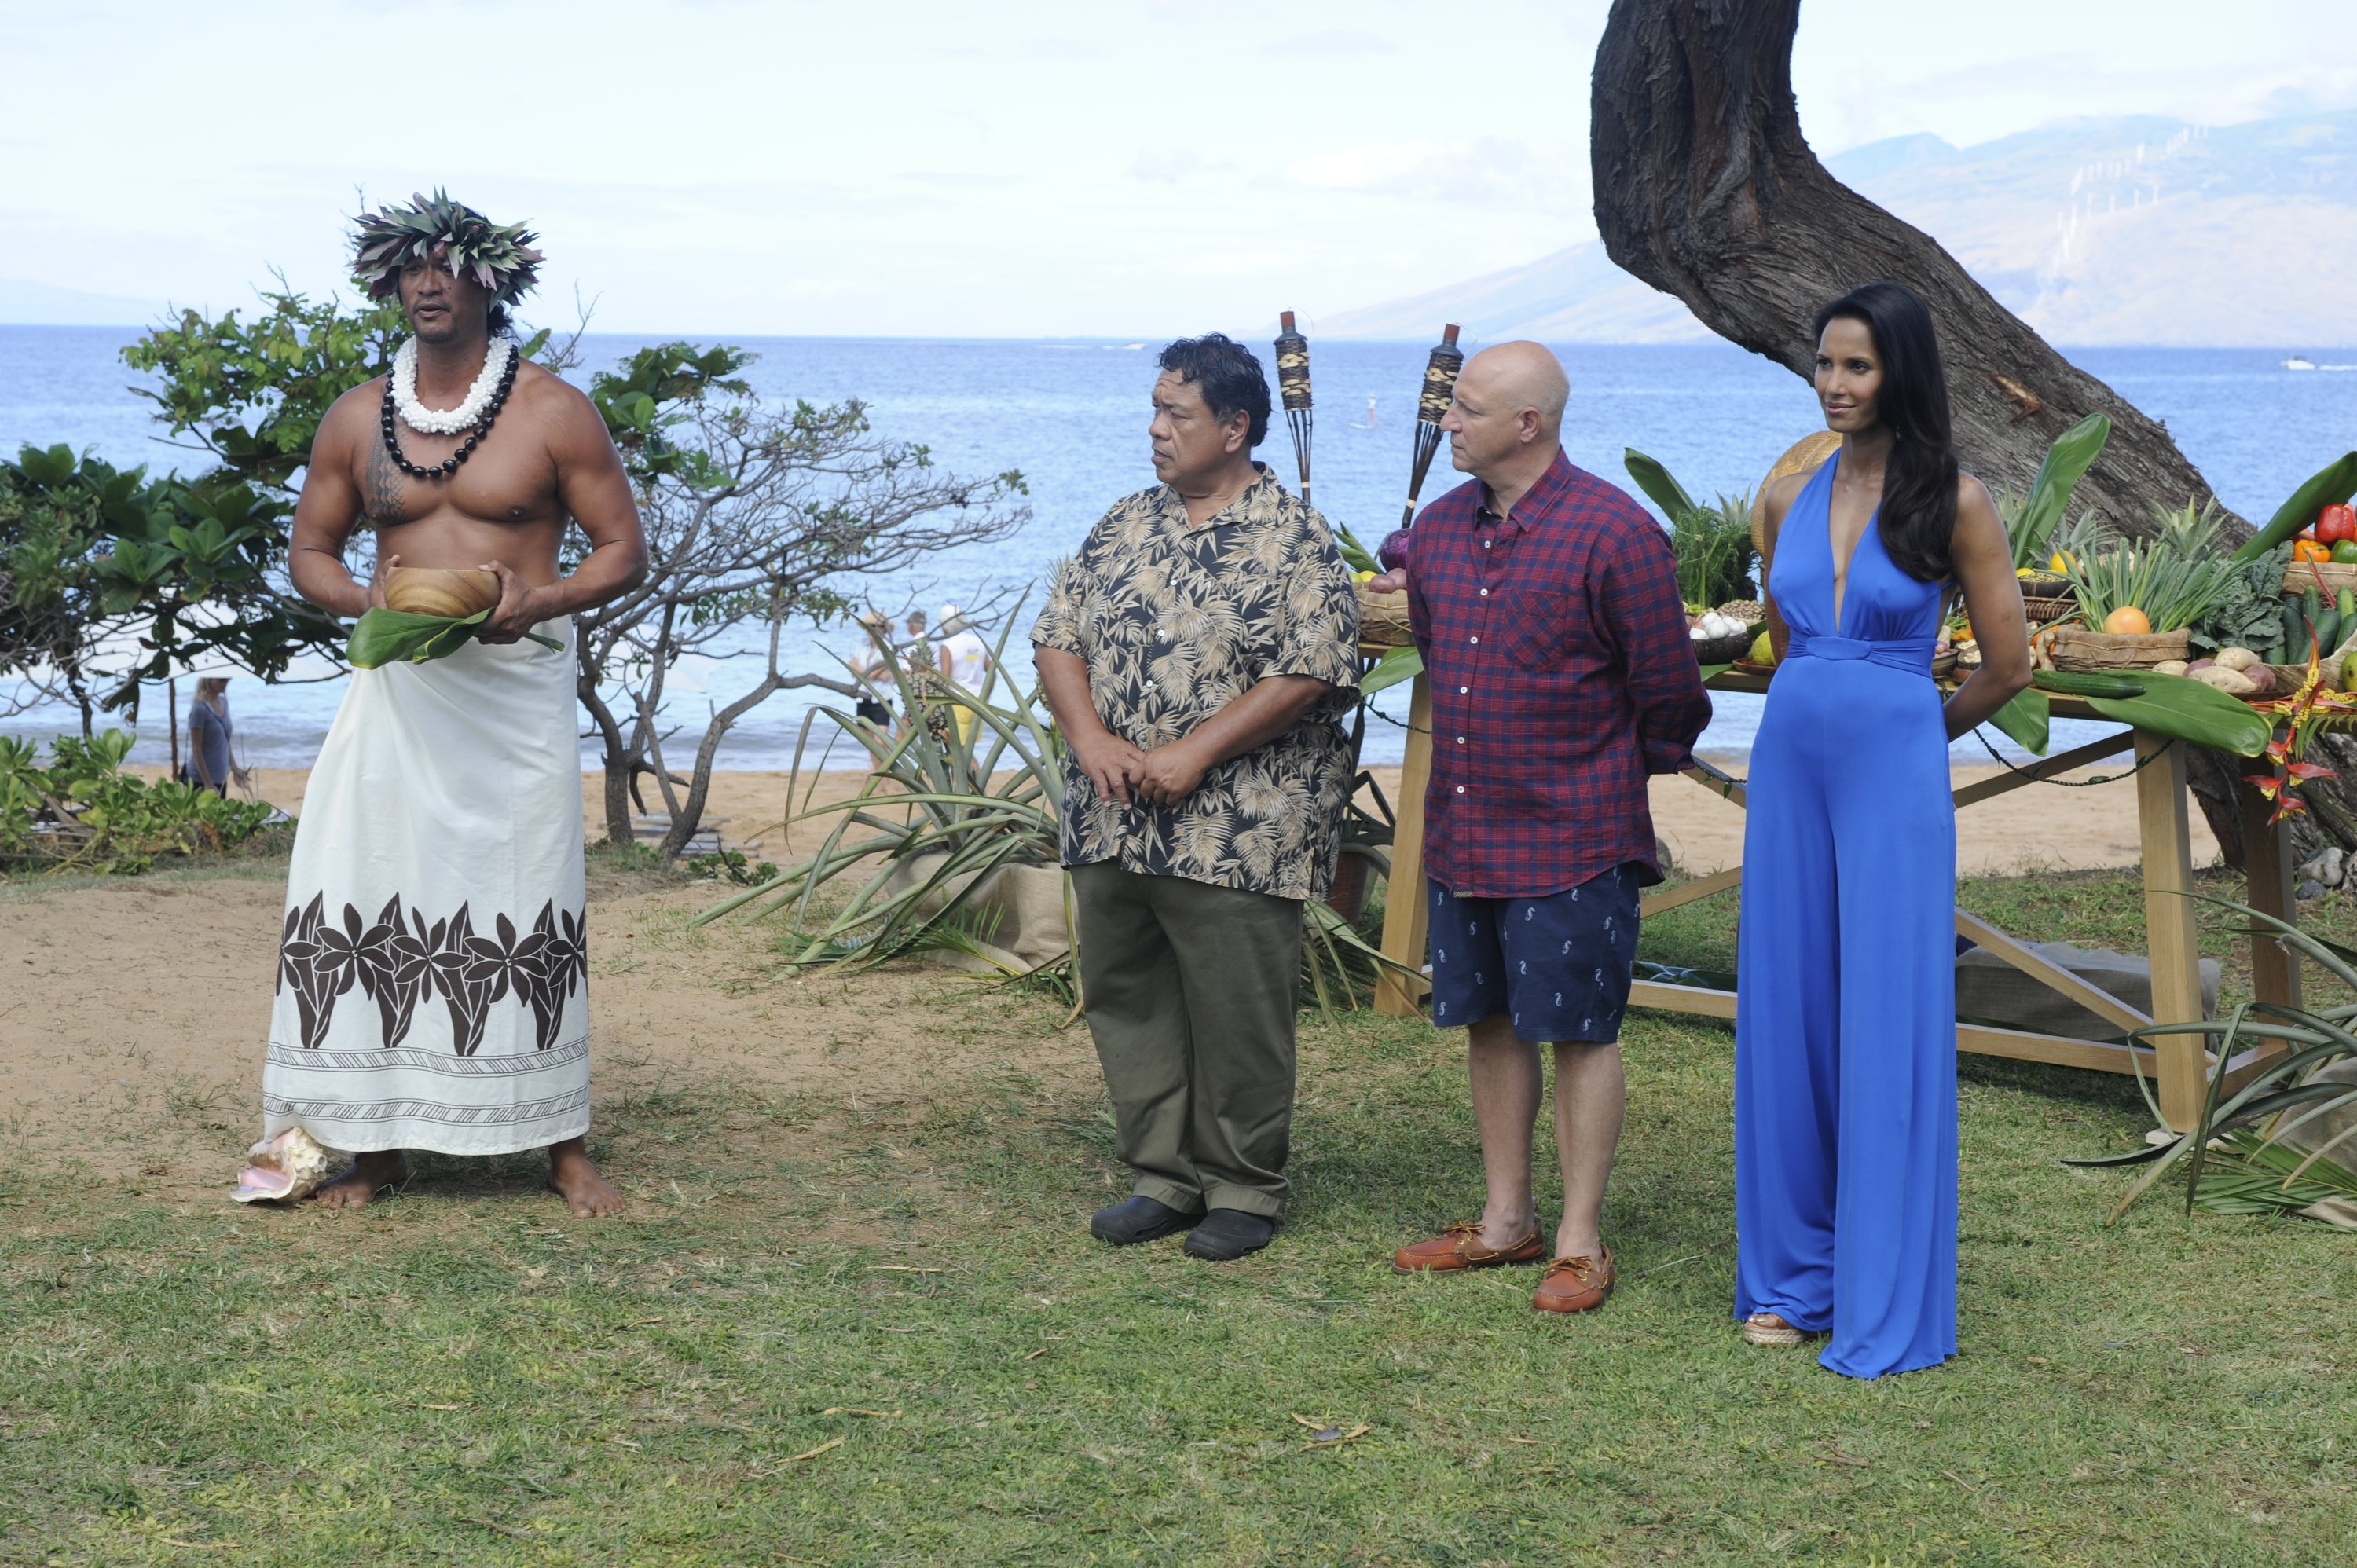 NUP 158230 0996 Top Chef Finale Location Revealed: Maui Wowie!